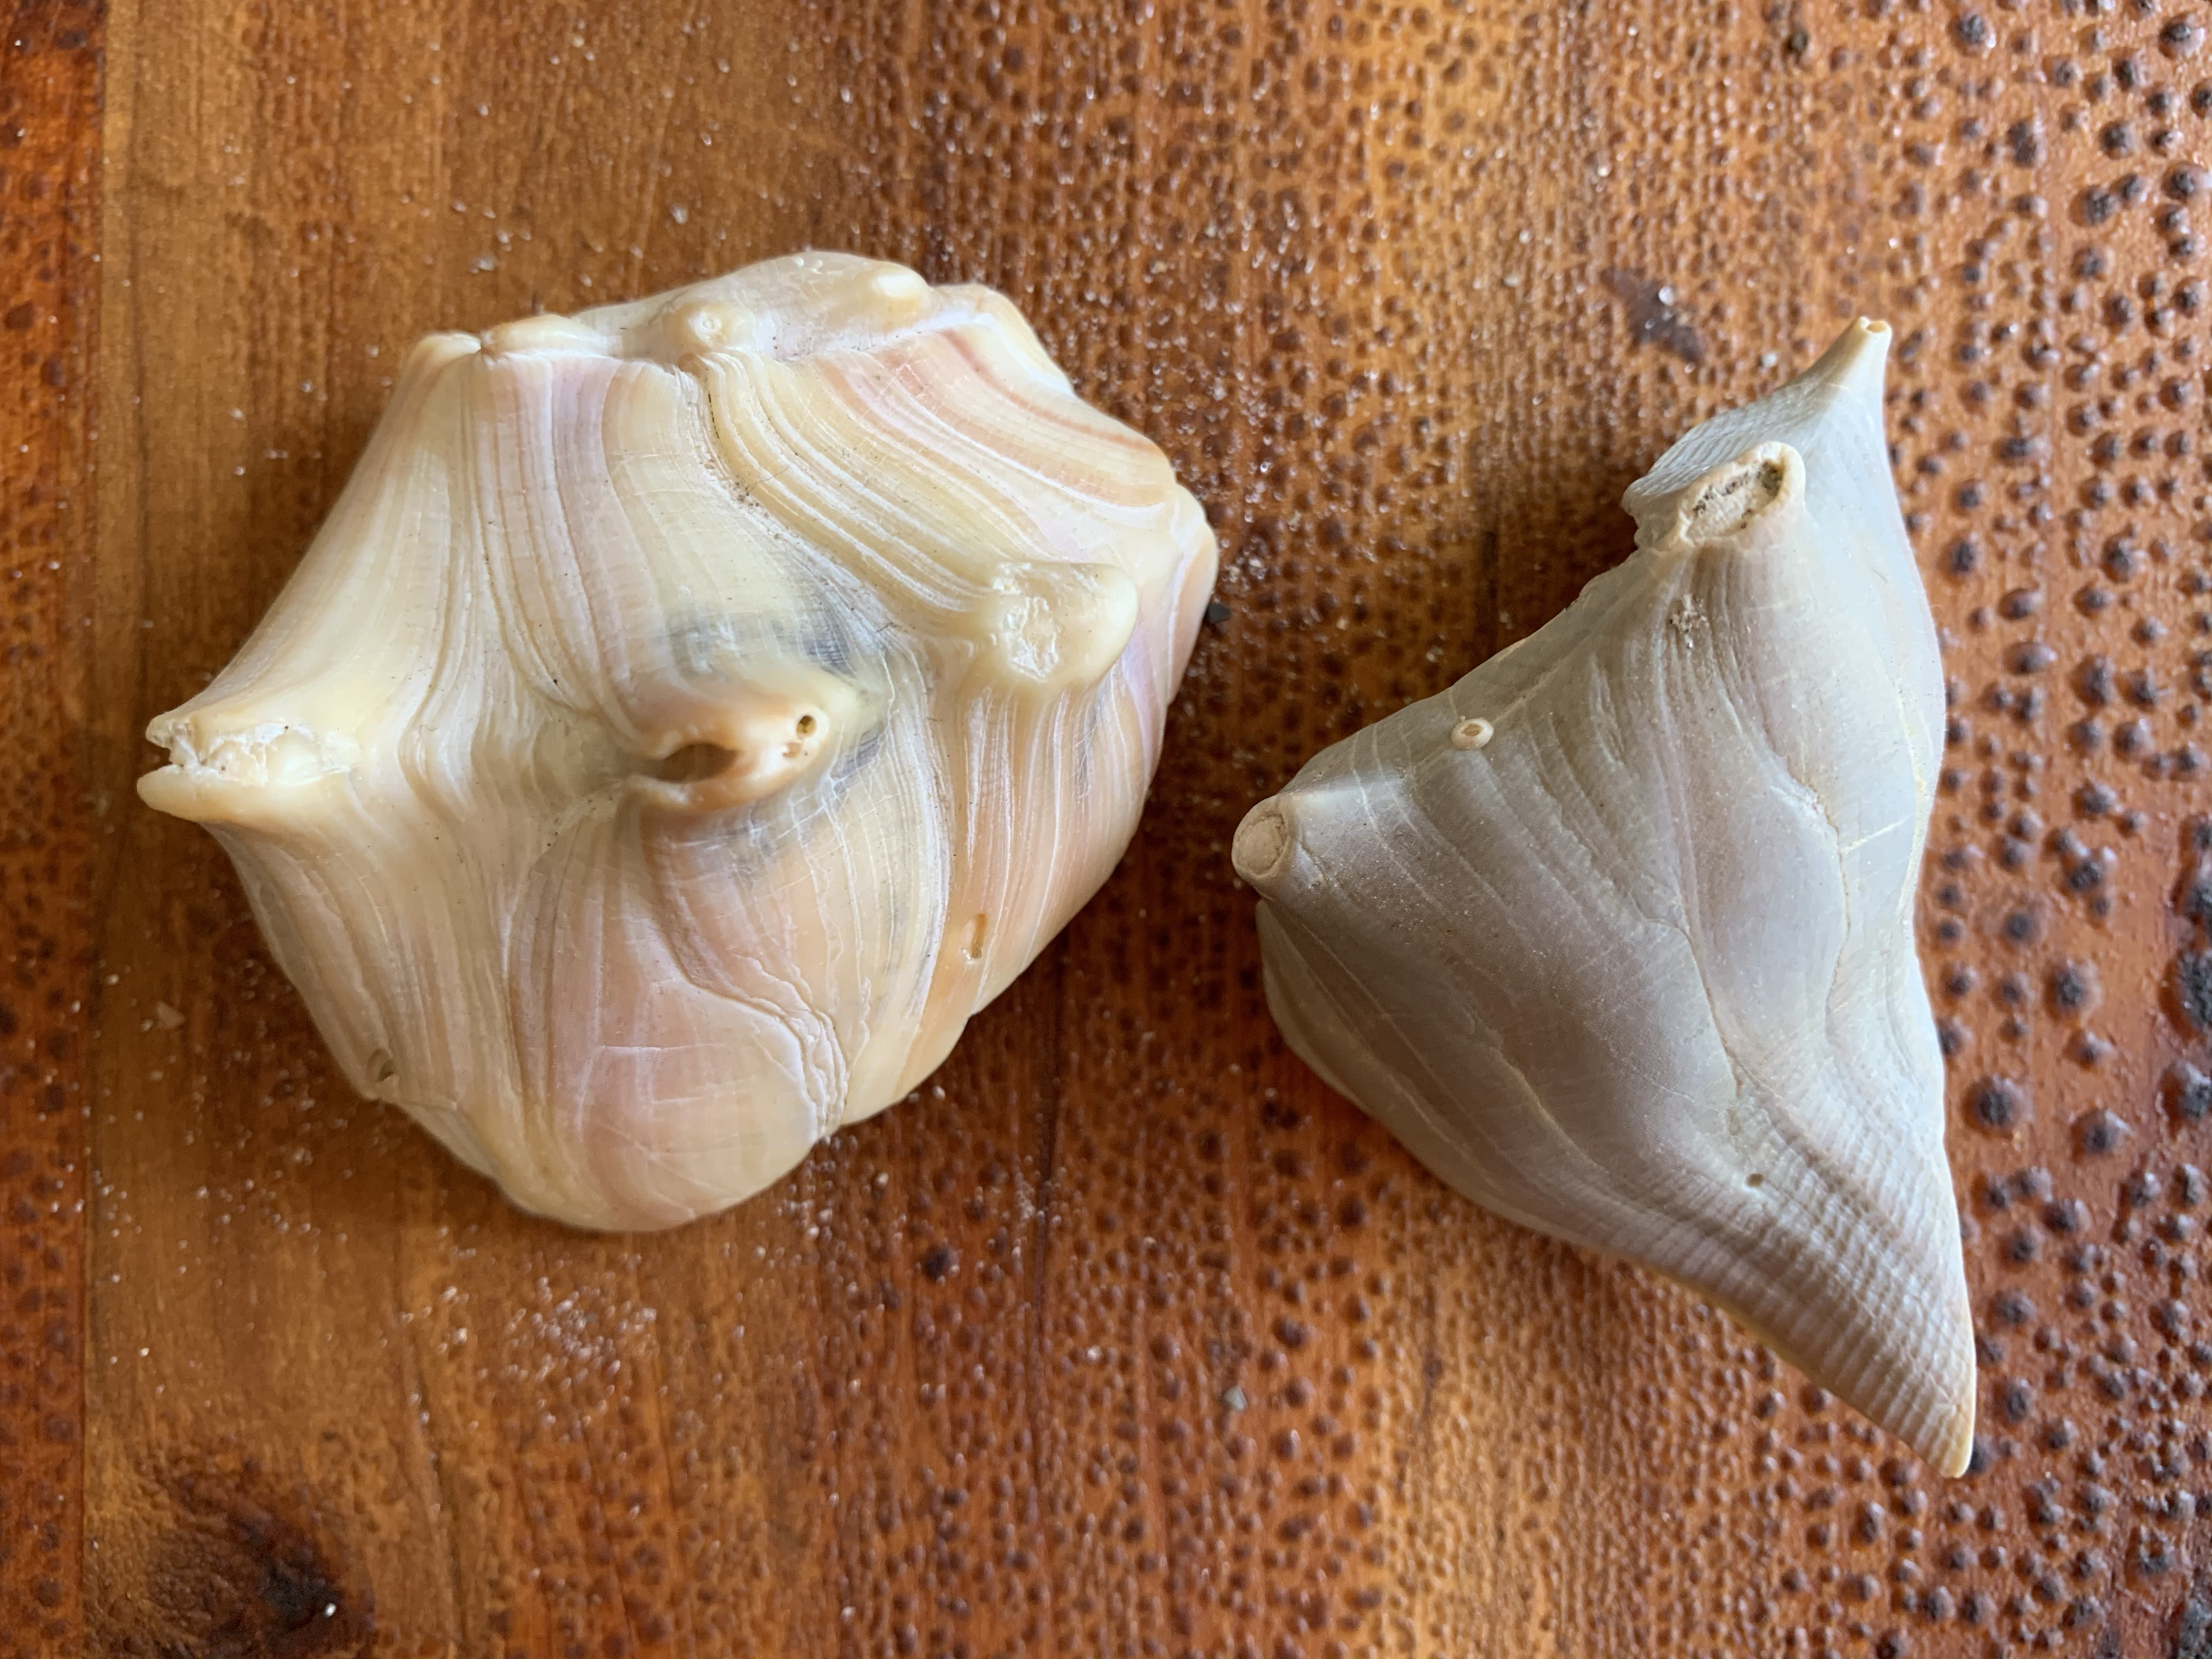 Partial seashell pieces of the knobbed whelk